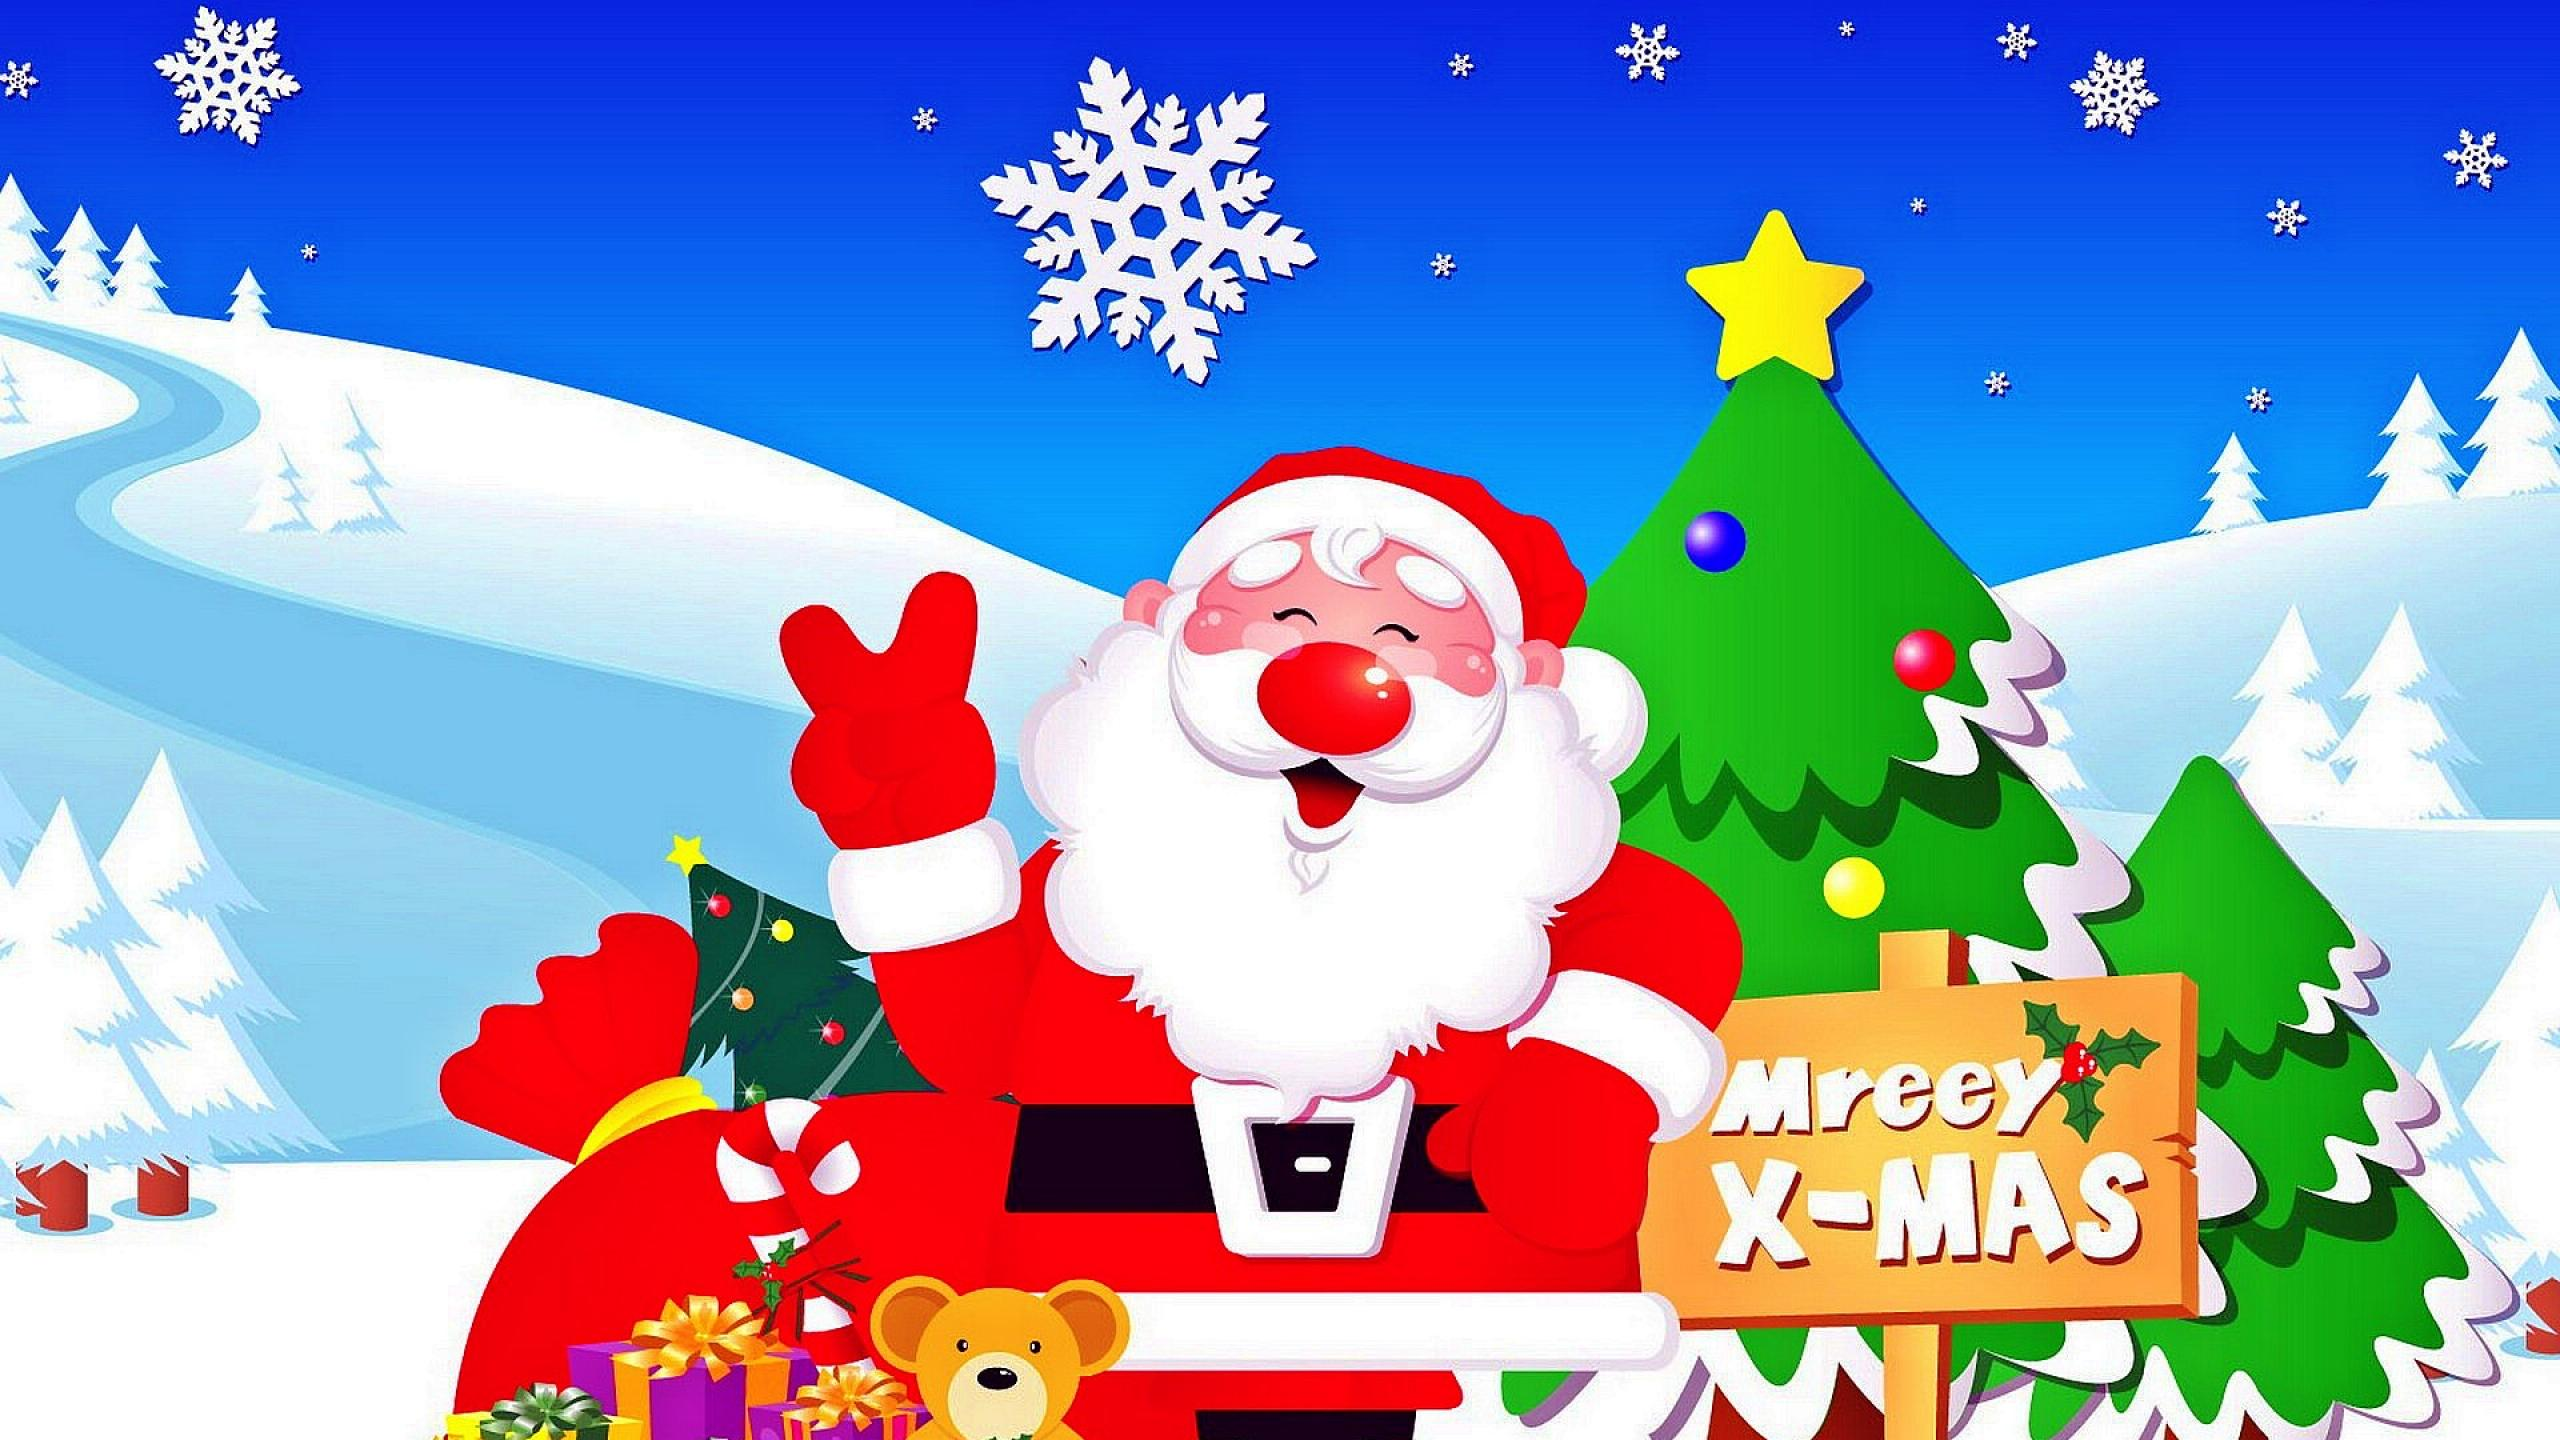 free download cute christmas wallpapers | pixelstalk